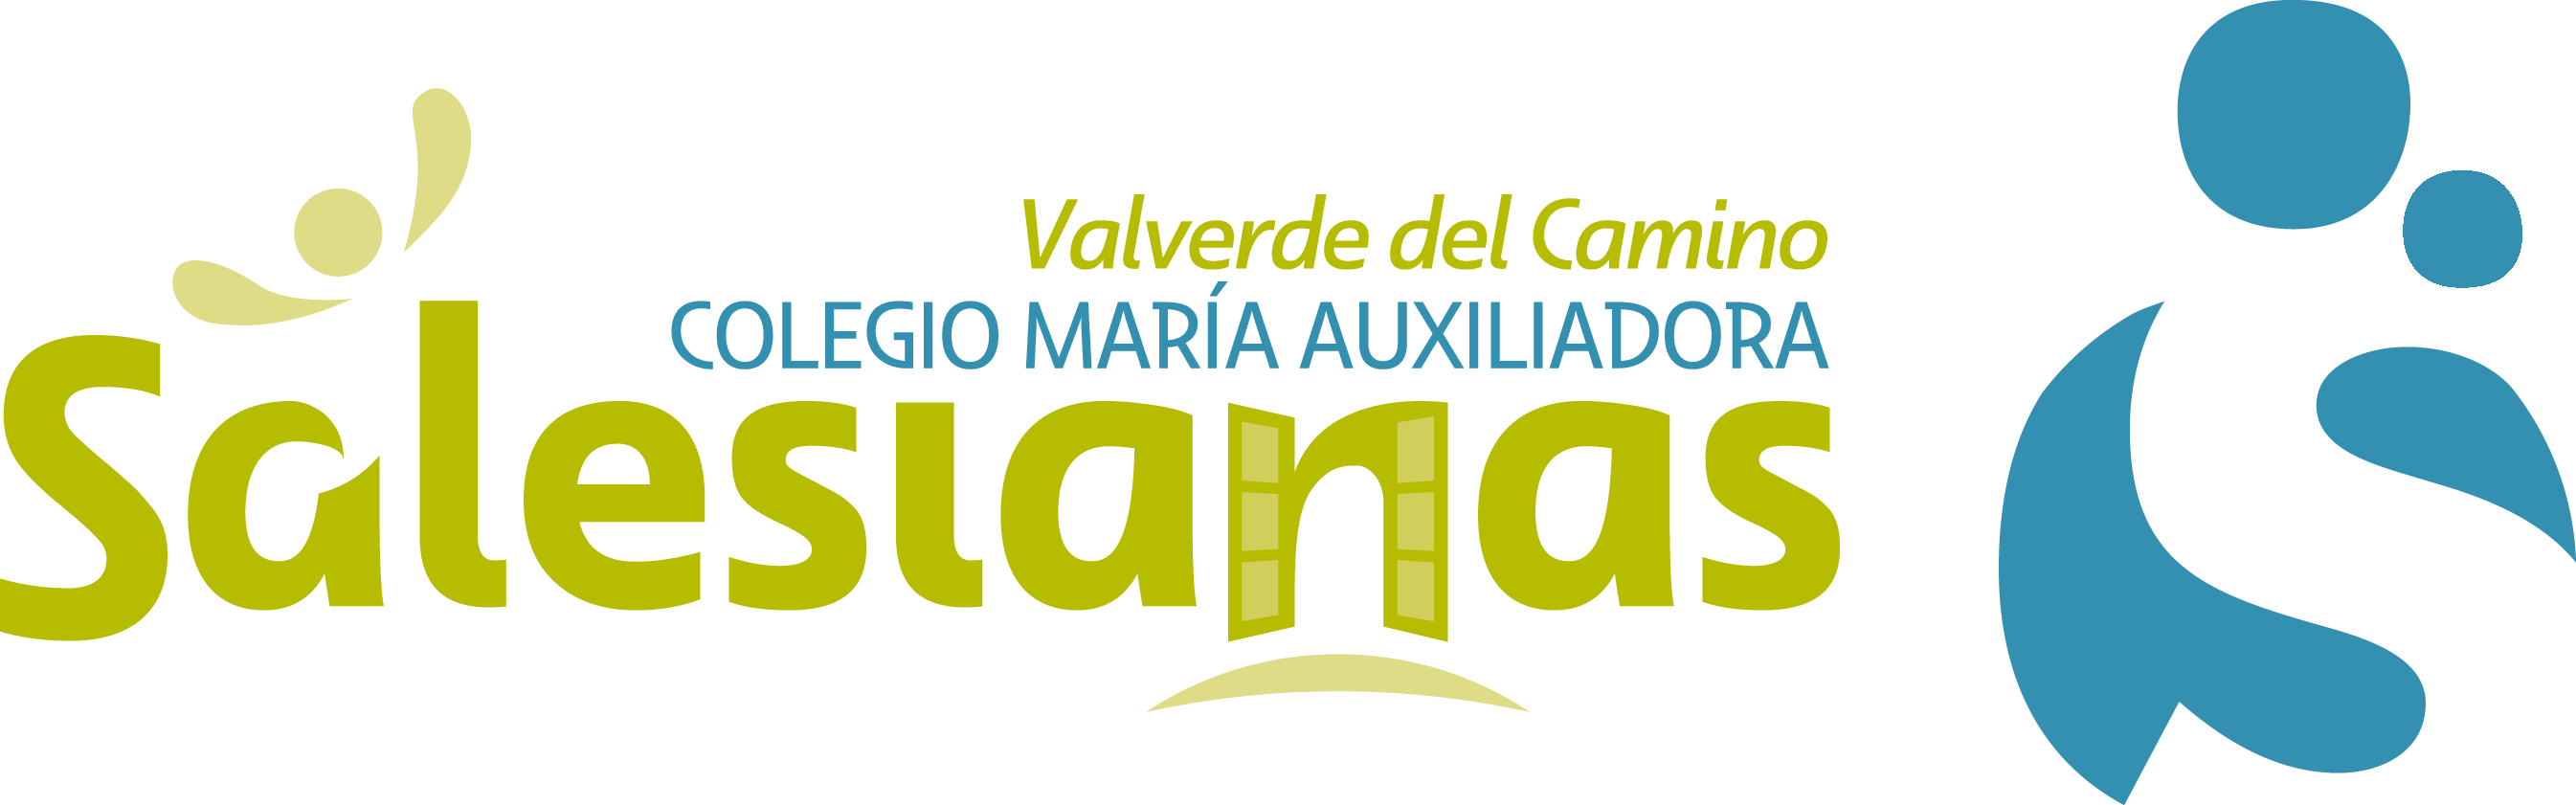 Colegio Mª Auxiliadora – Valverde